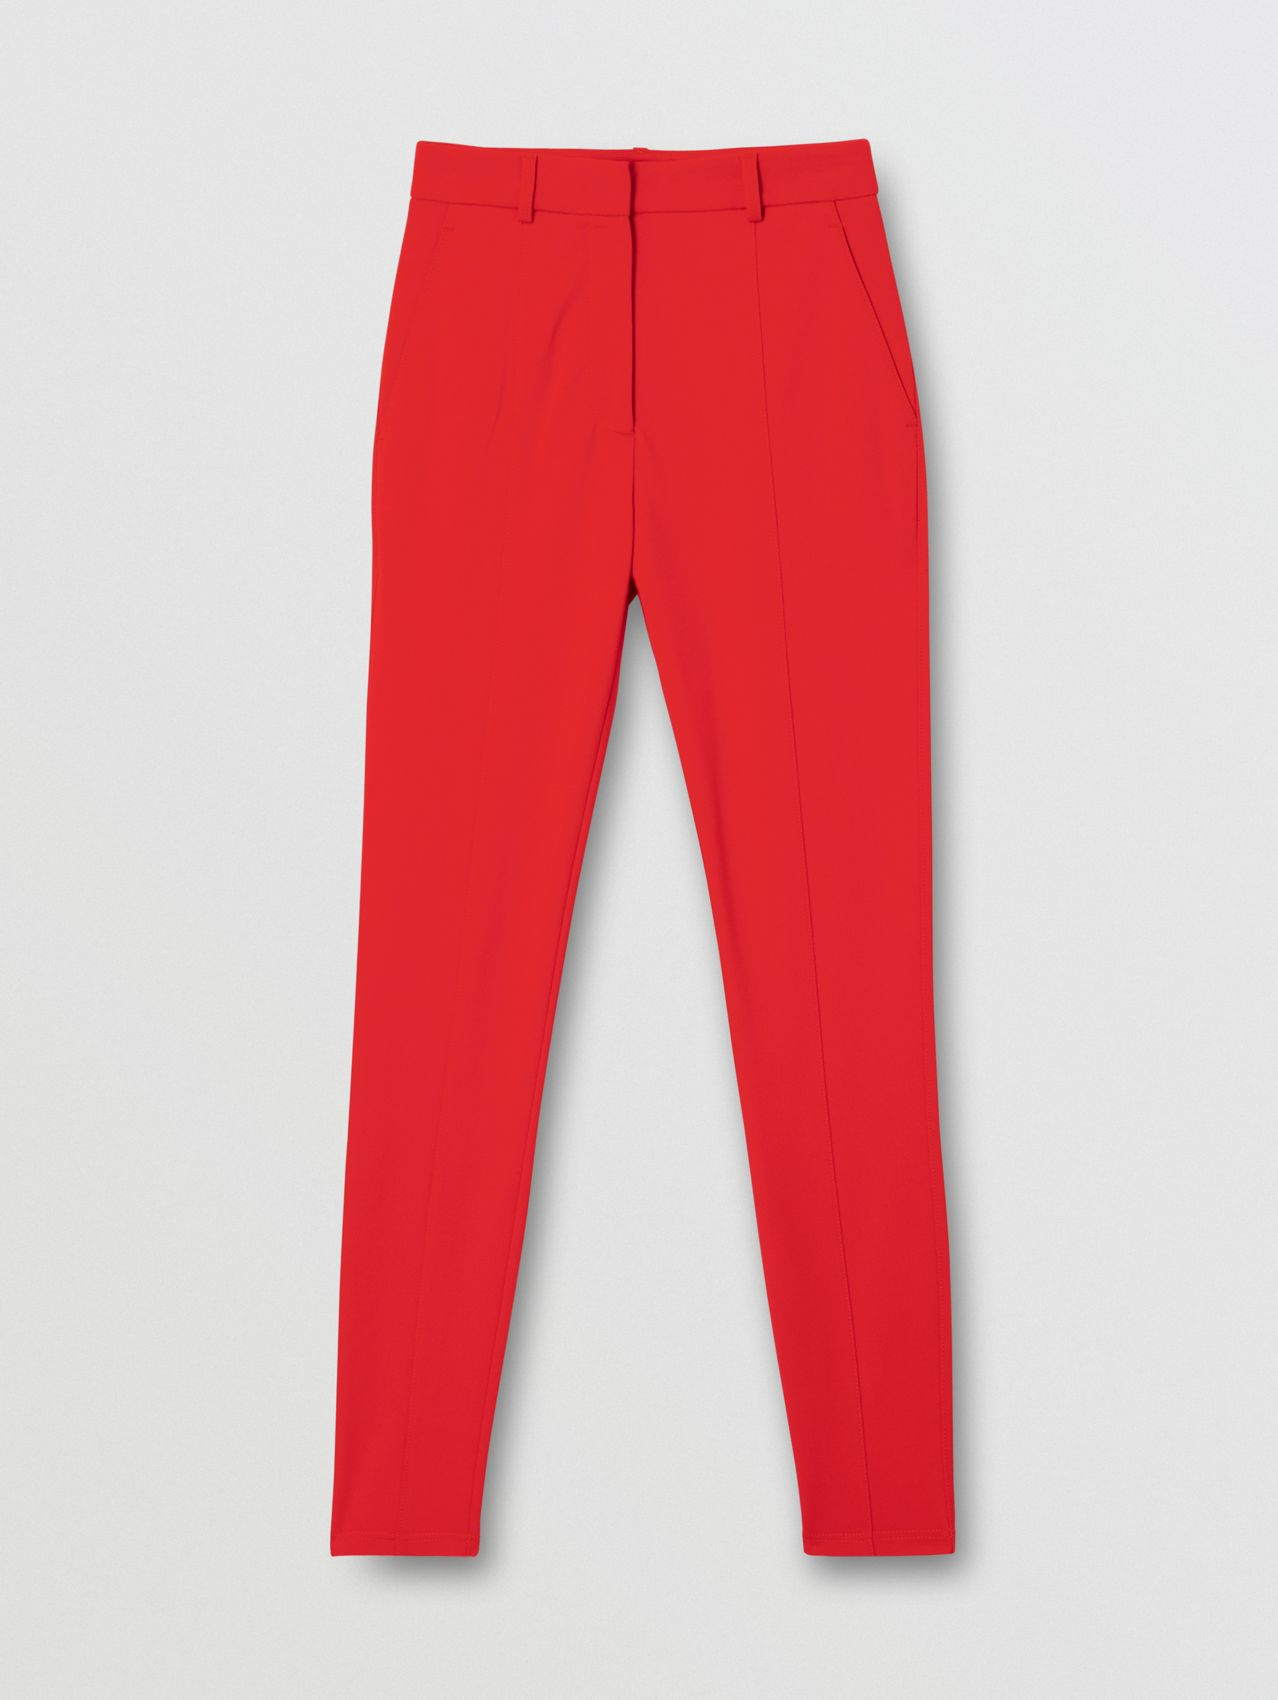 Pantaloni jodhpur in jersey stretch (Rosso Intenso)